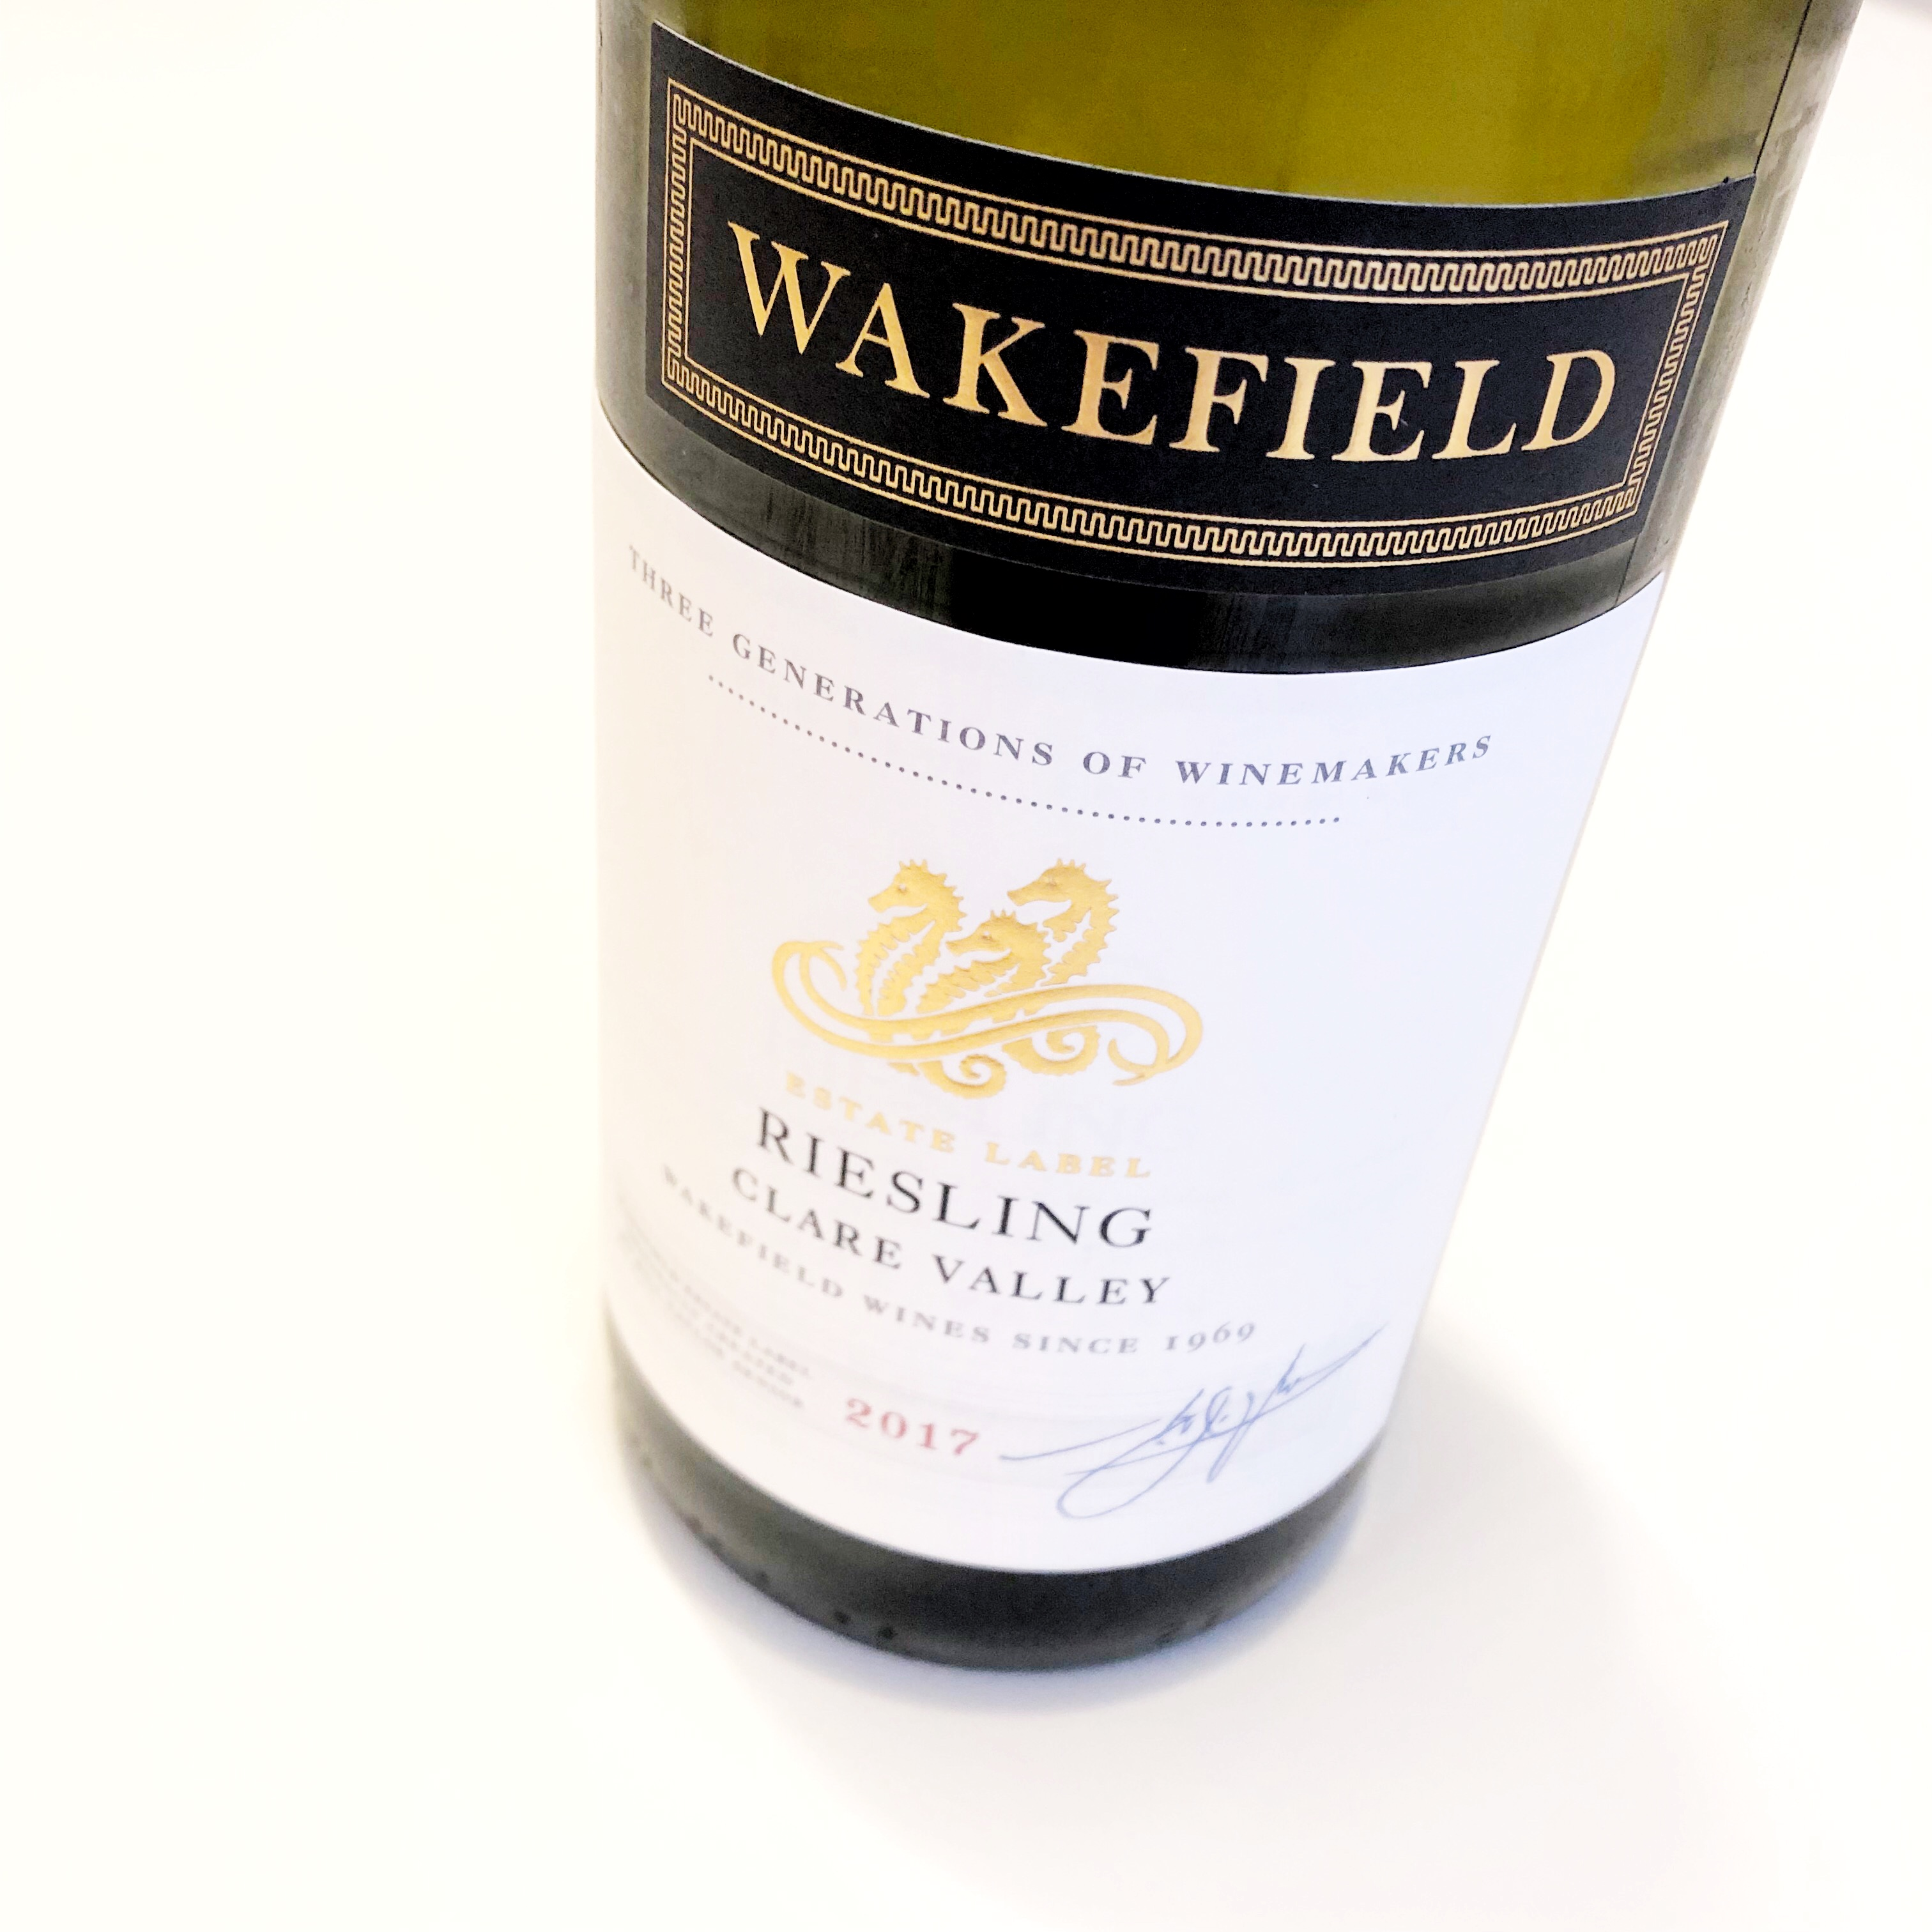 Wakefield Clare Valley Riesling